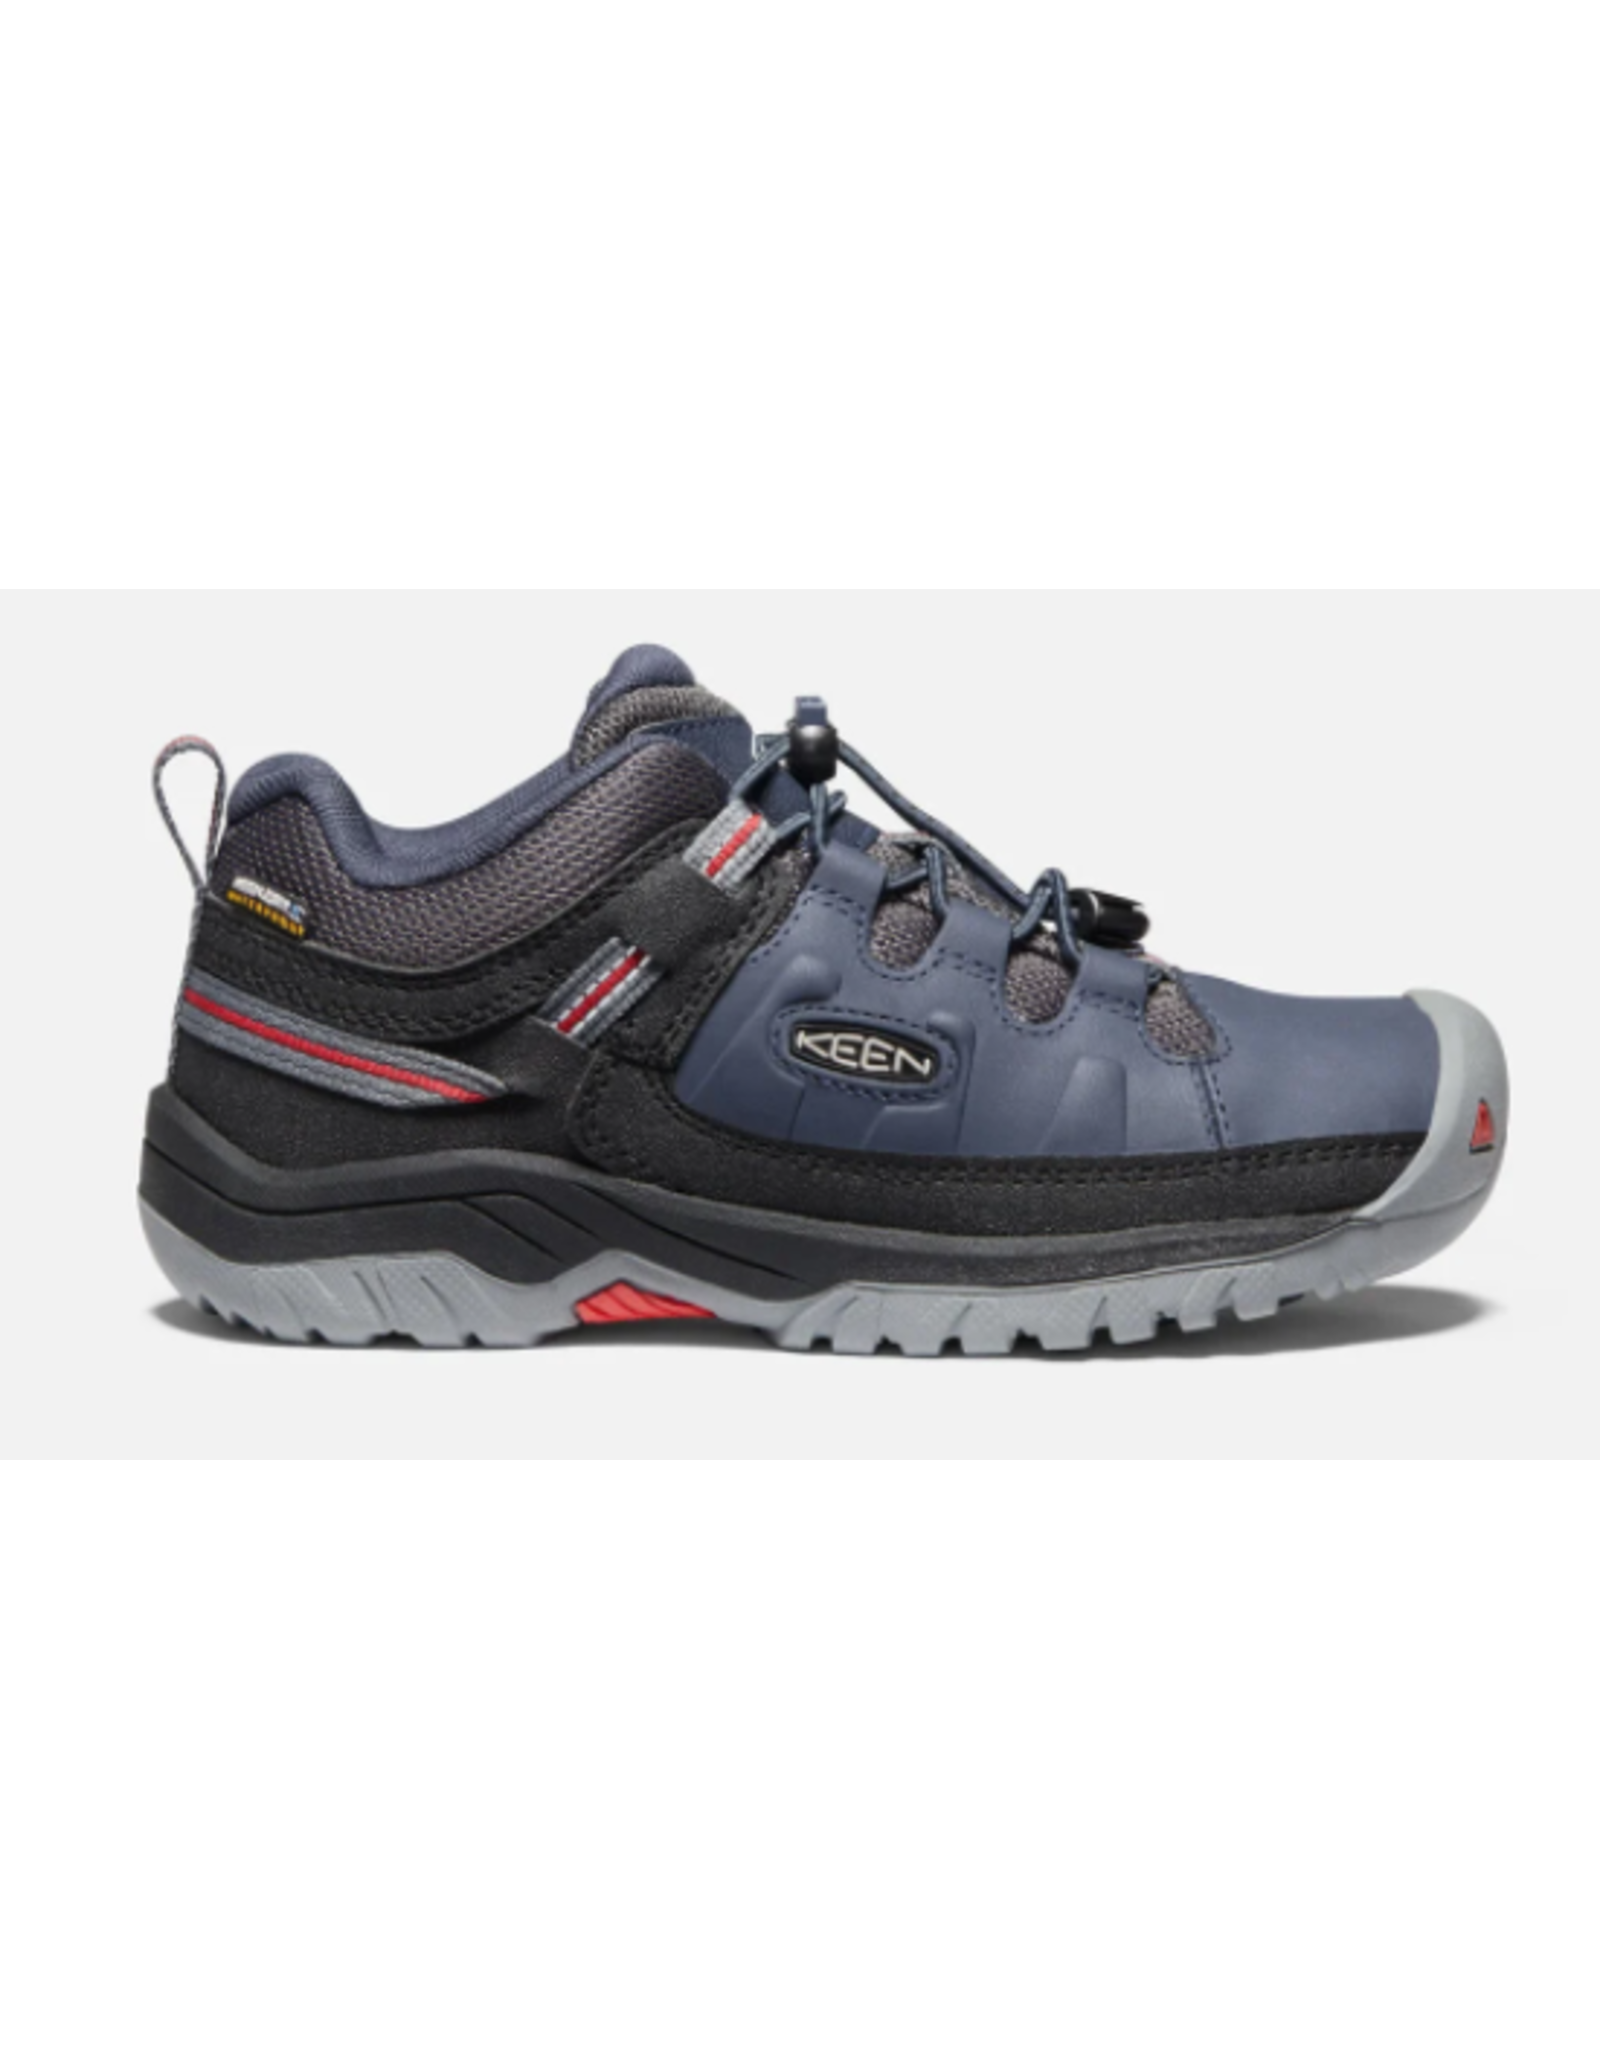 KEEN KEEN - Y - Targhee Low WP -